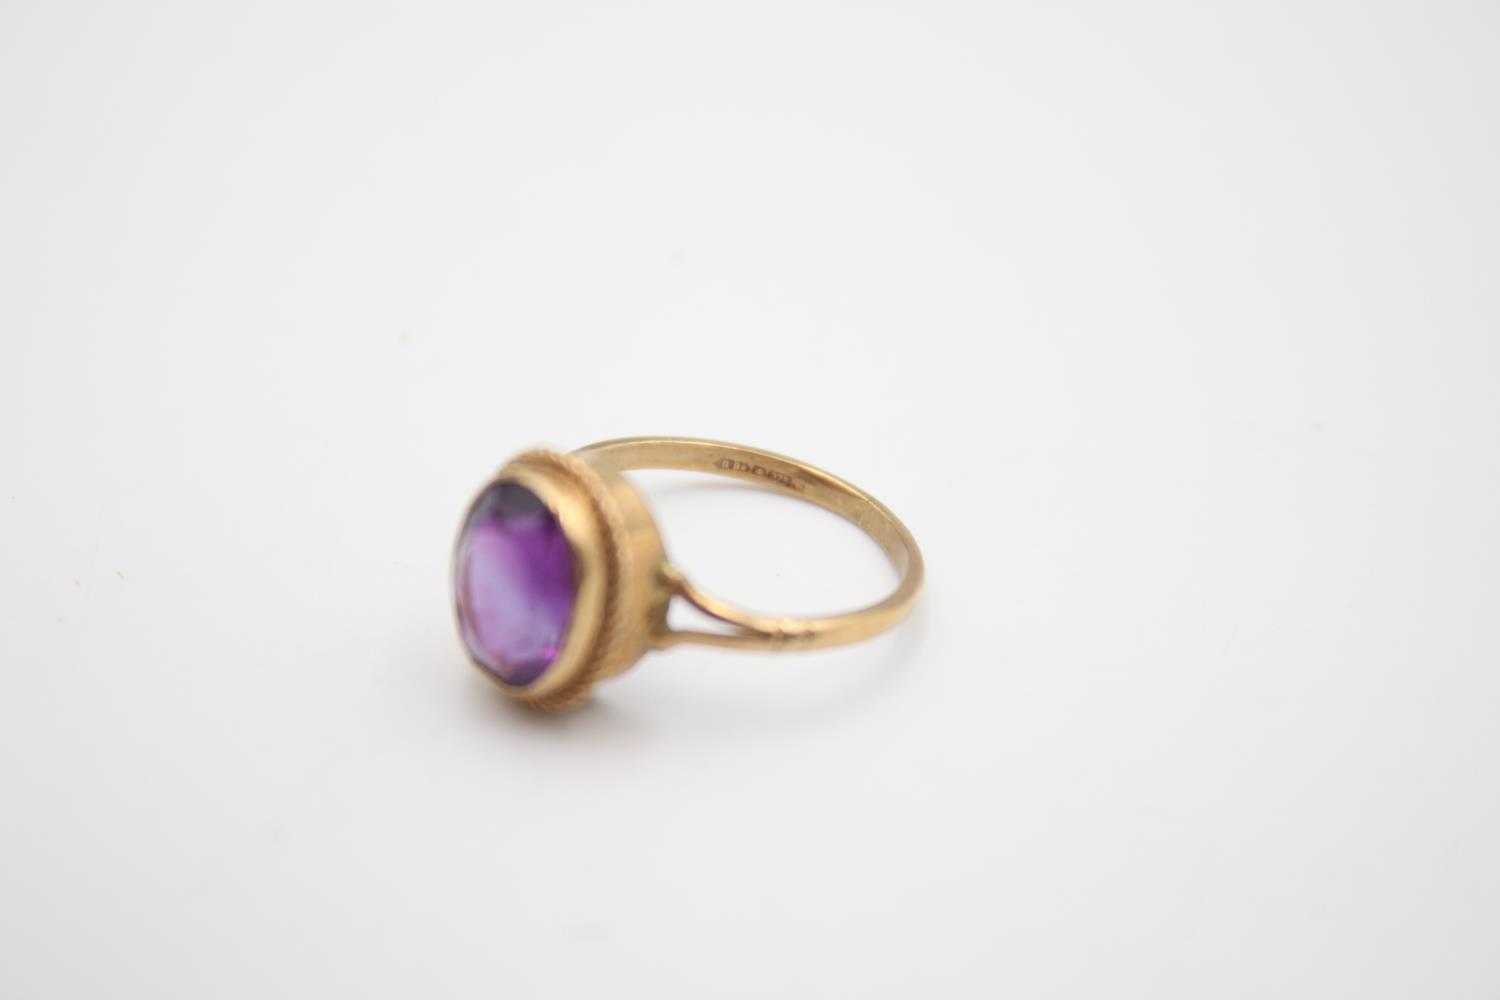 2 x 9ct gold amethyst rings inc modernist, solitaire 4.6g Size L & N - Image 6 of 6